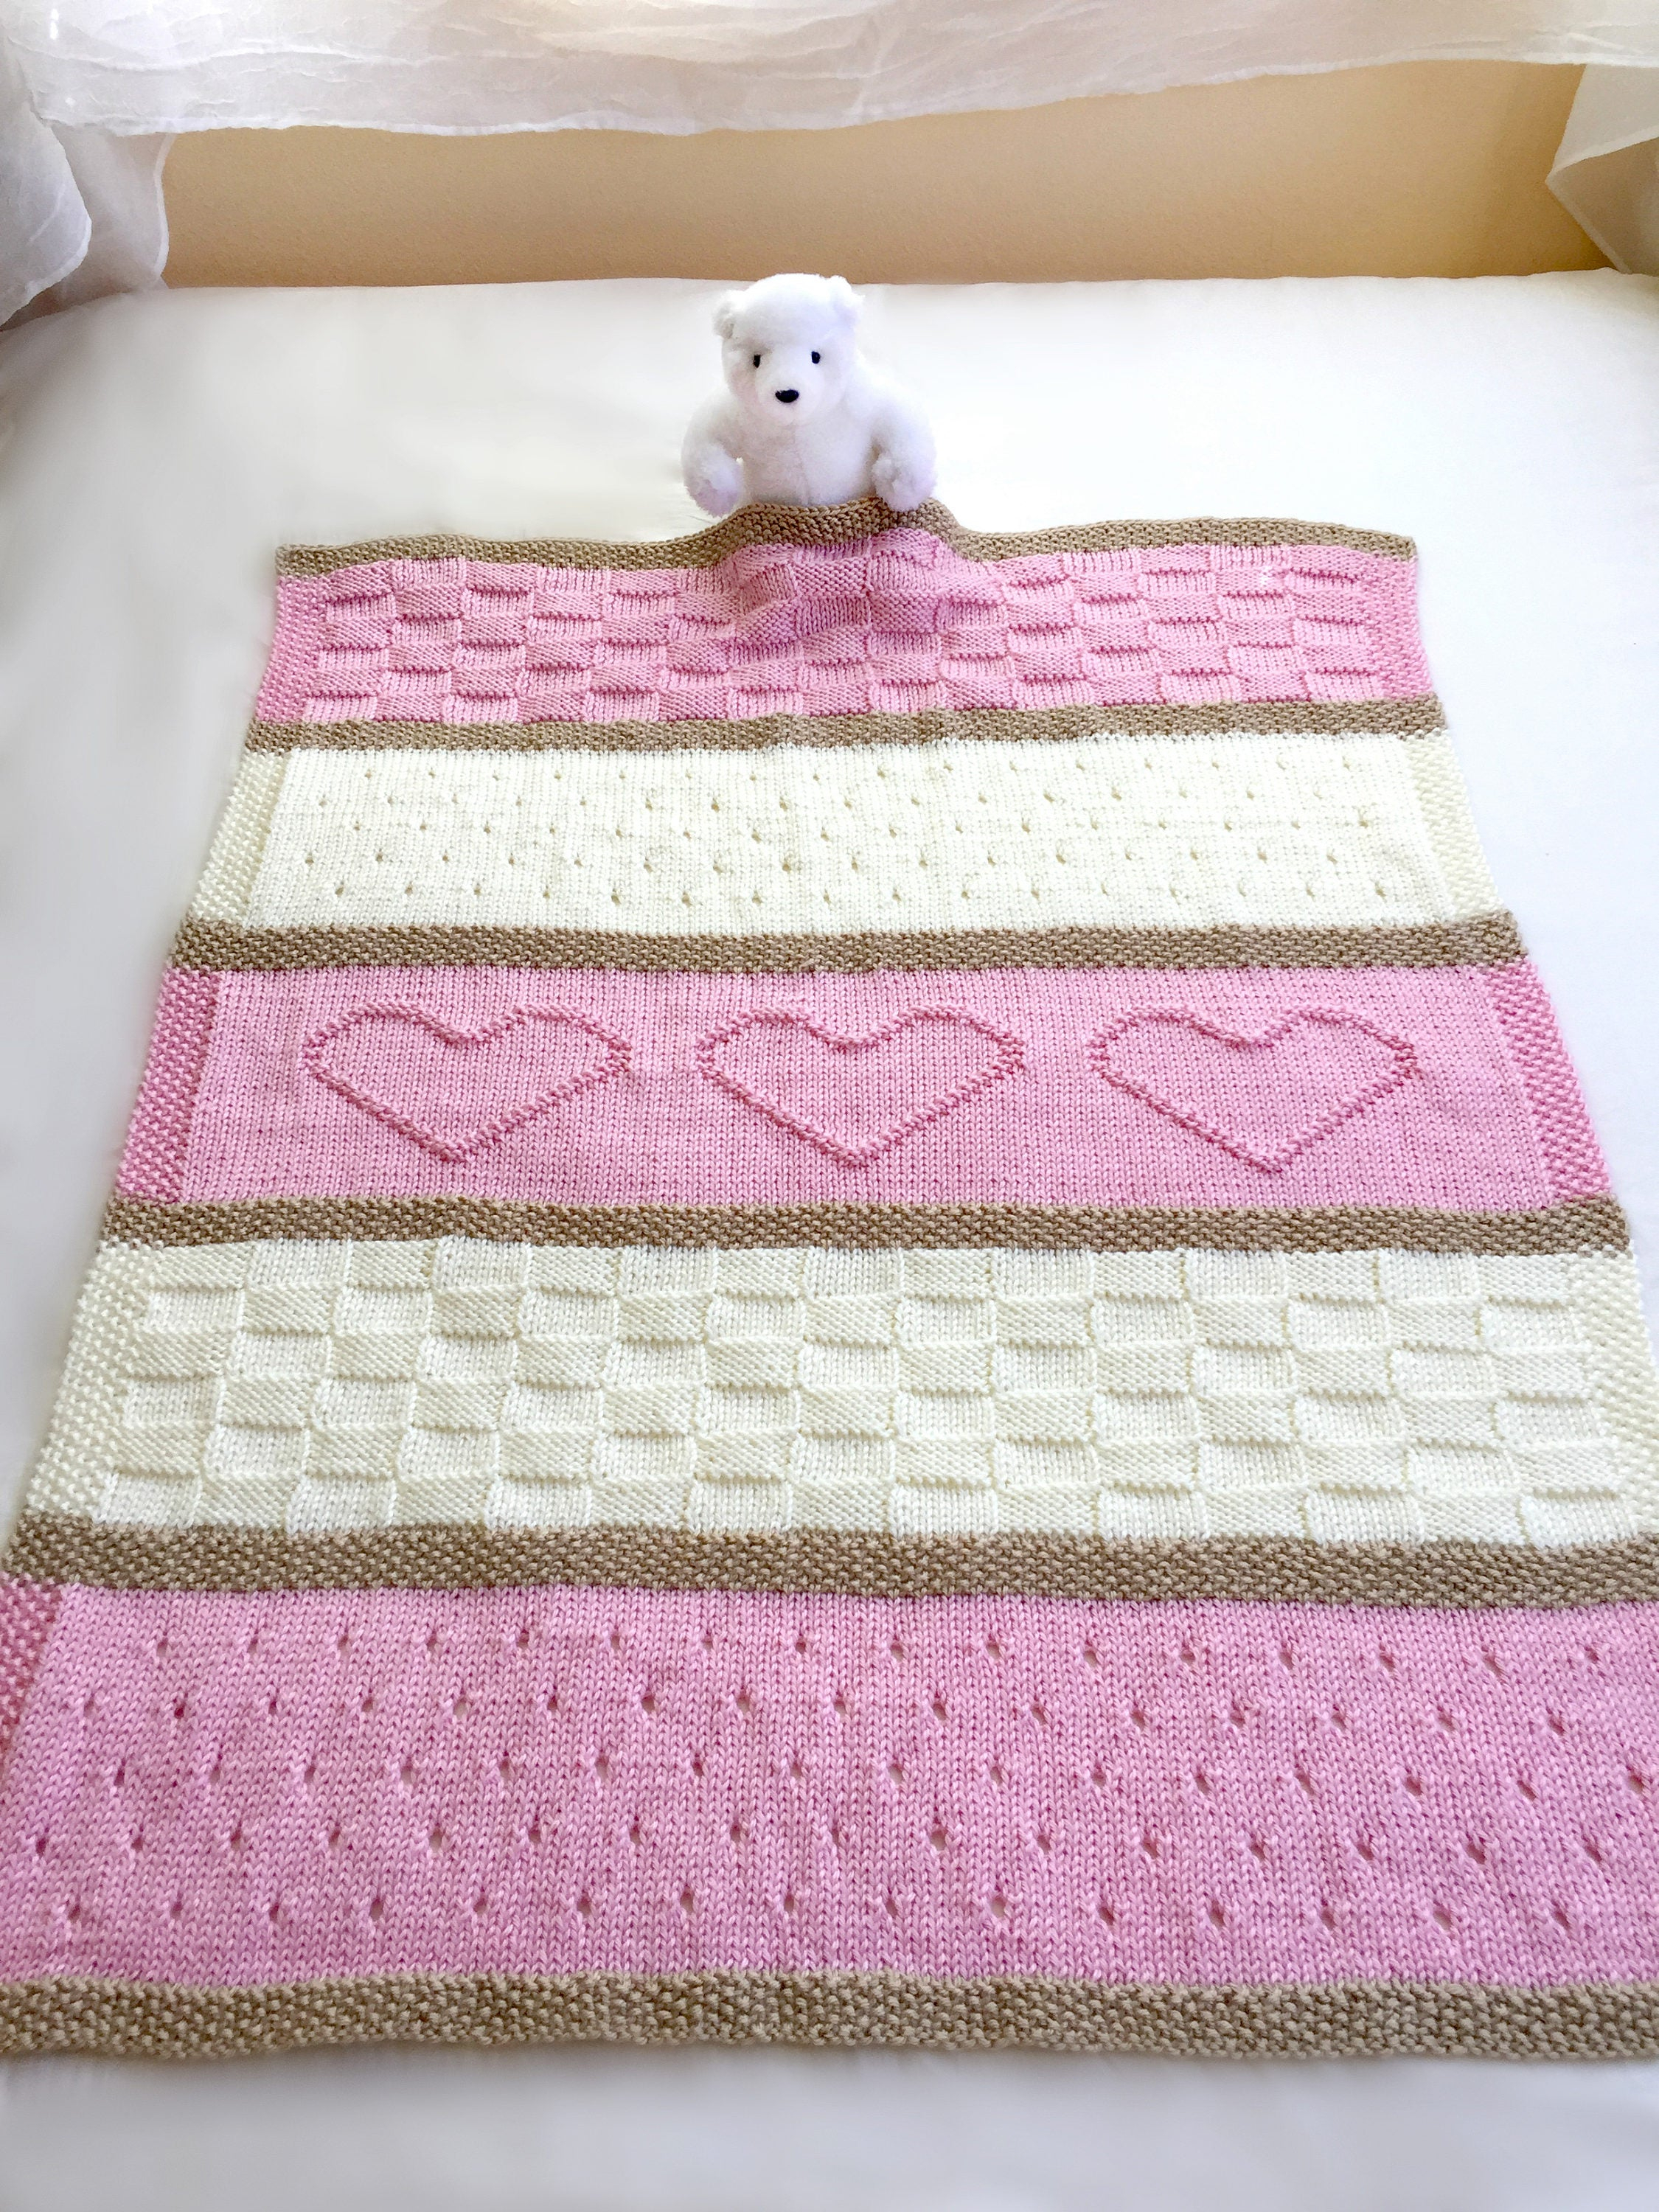 Knitting Baby Blankets Patterns Ba Blanket Pattern Knit Ba Blanket Pattern Heart Ba Blanket Pattern Crib Blanket Knitting Pattern Deborah Oleary